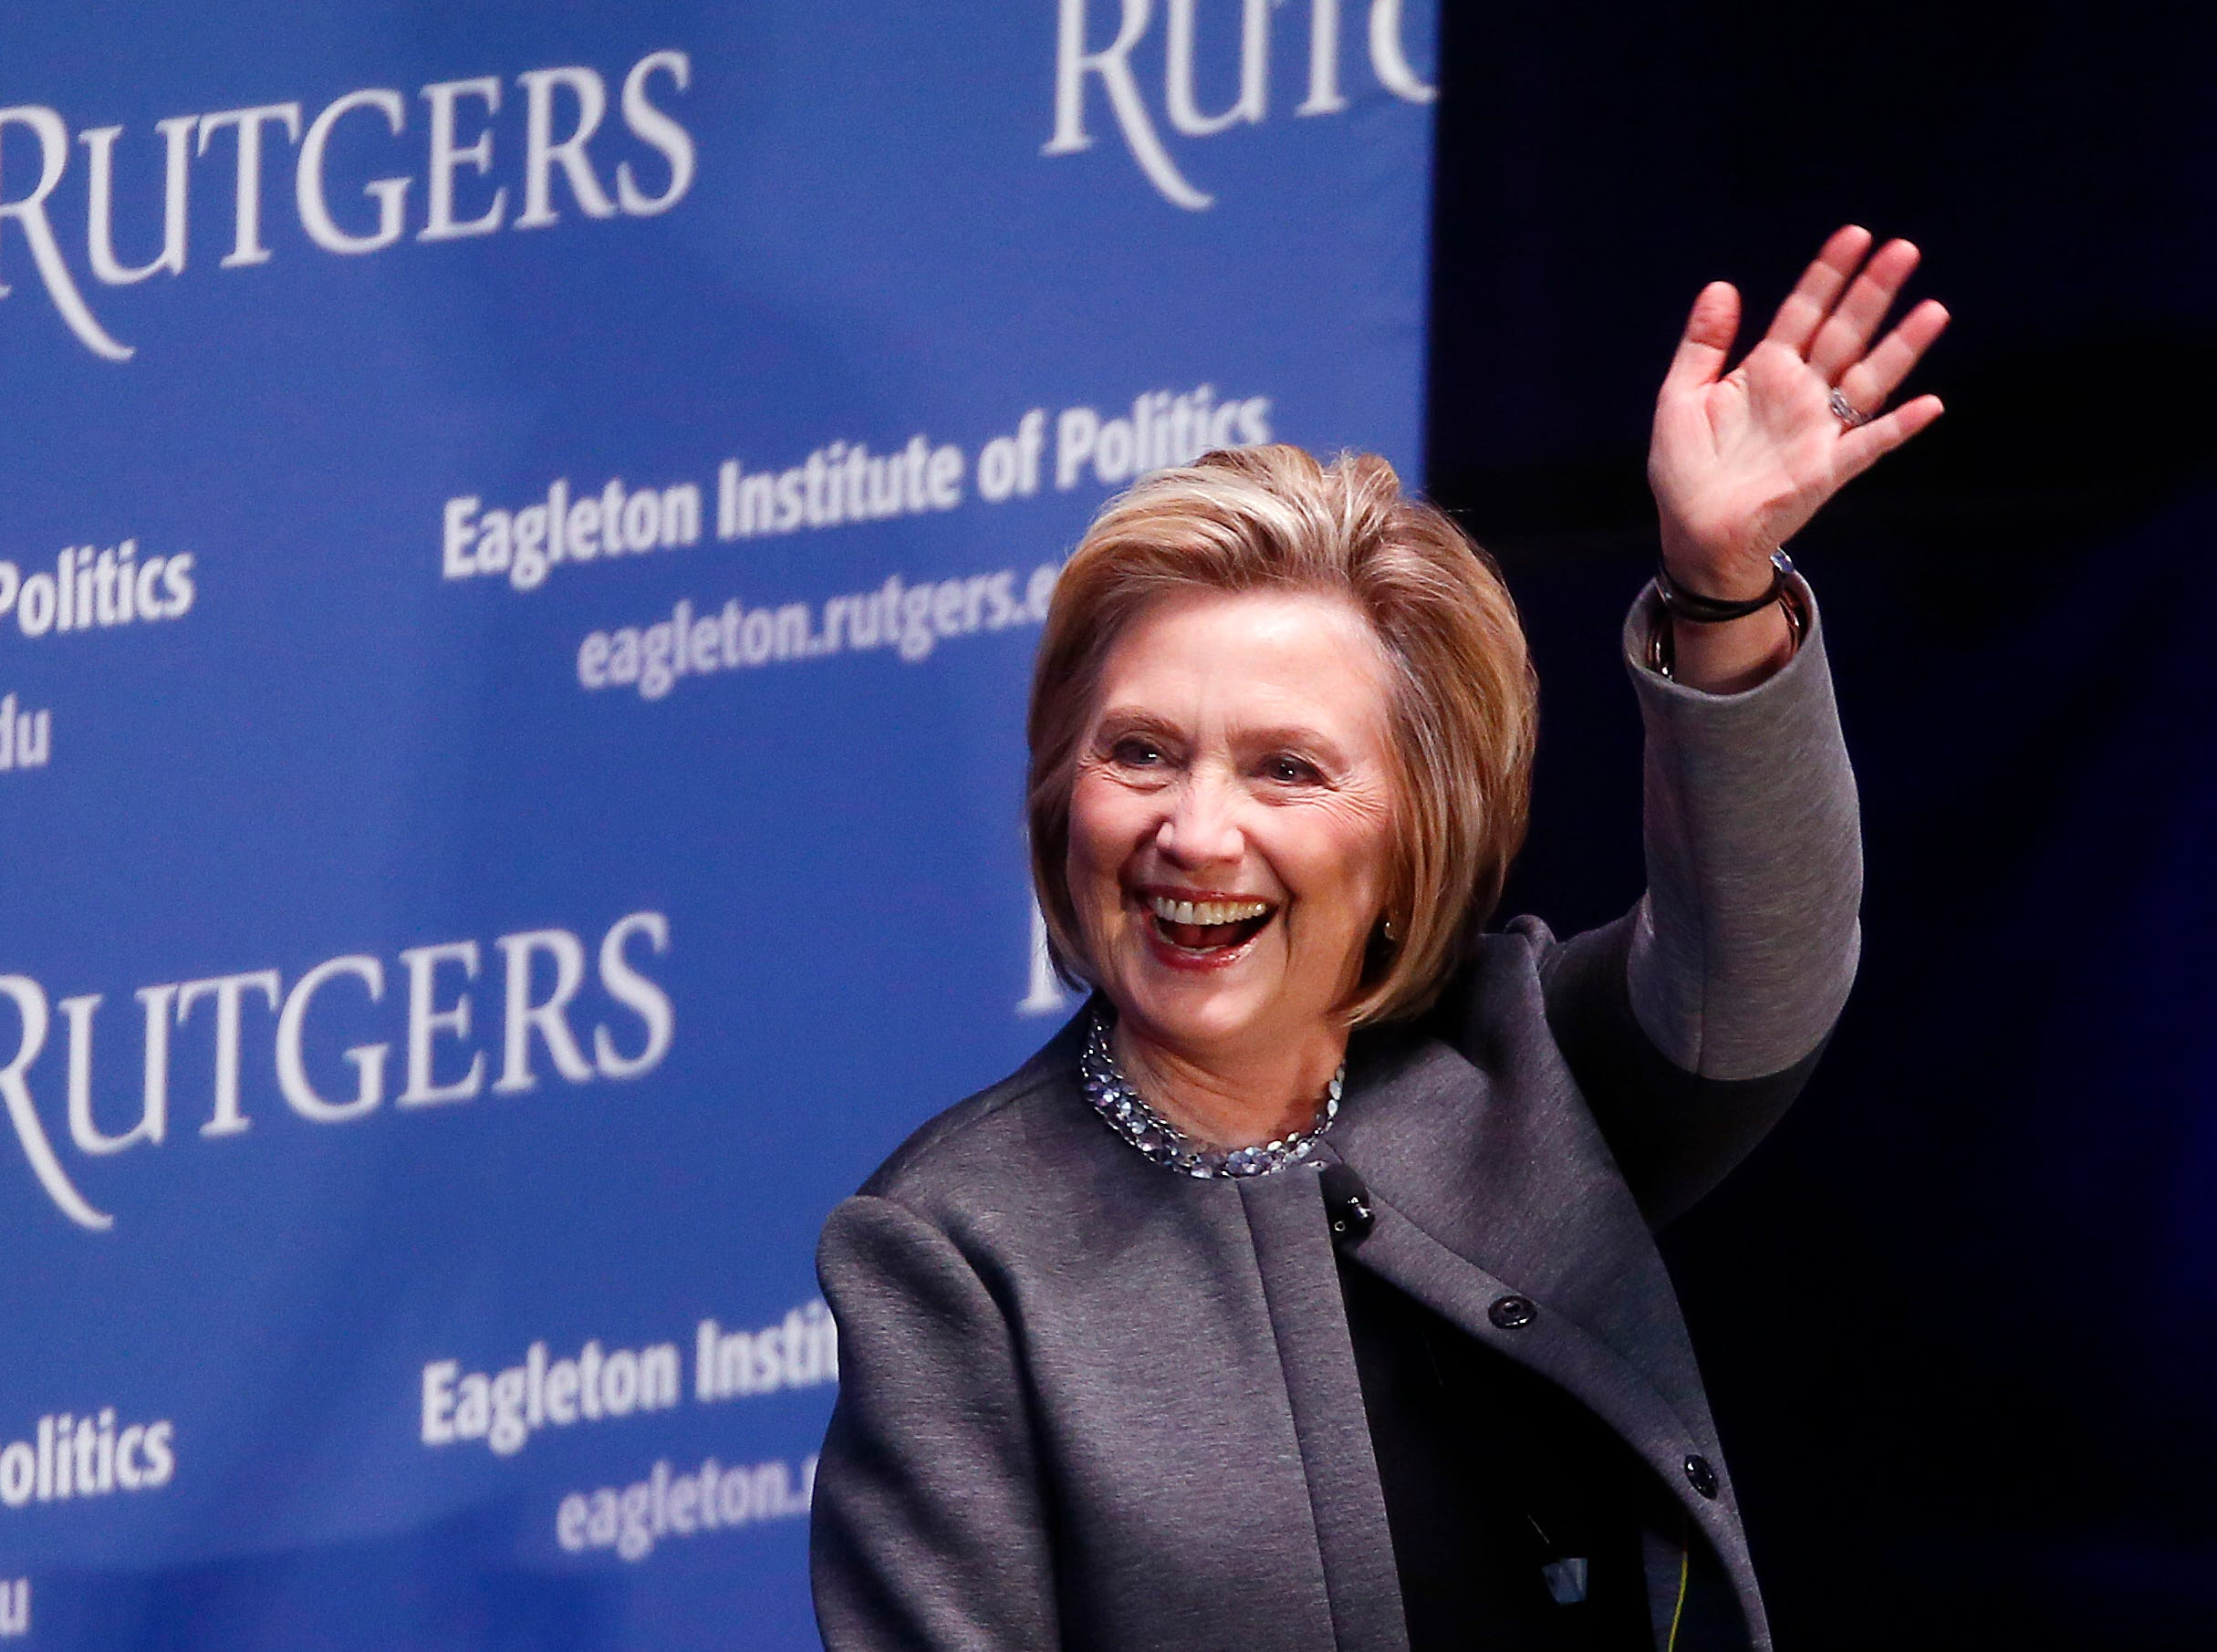 Hillary Clinton speaks with Ruth Mandel, Director, Eagleton Institute of Politics at Rutgers University, talking about politics, American democracy, her career and women's role in the political movement at the Rutgers Athletic Center, approximately 4800 attended. March 29, 2018. New Brunswick, NJ.